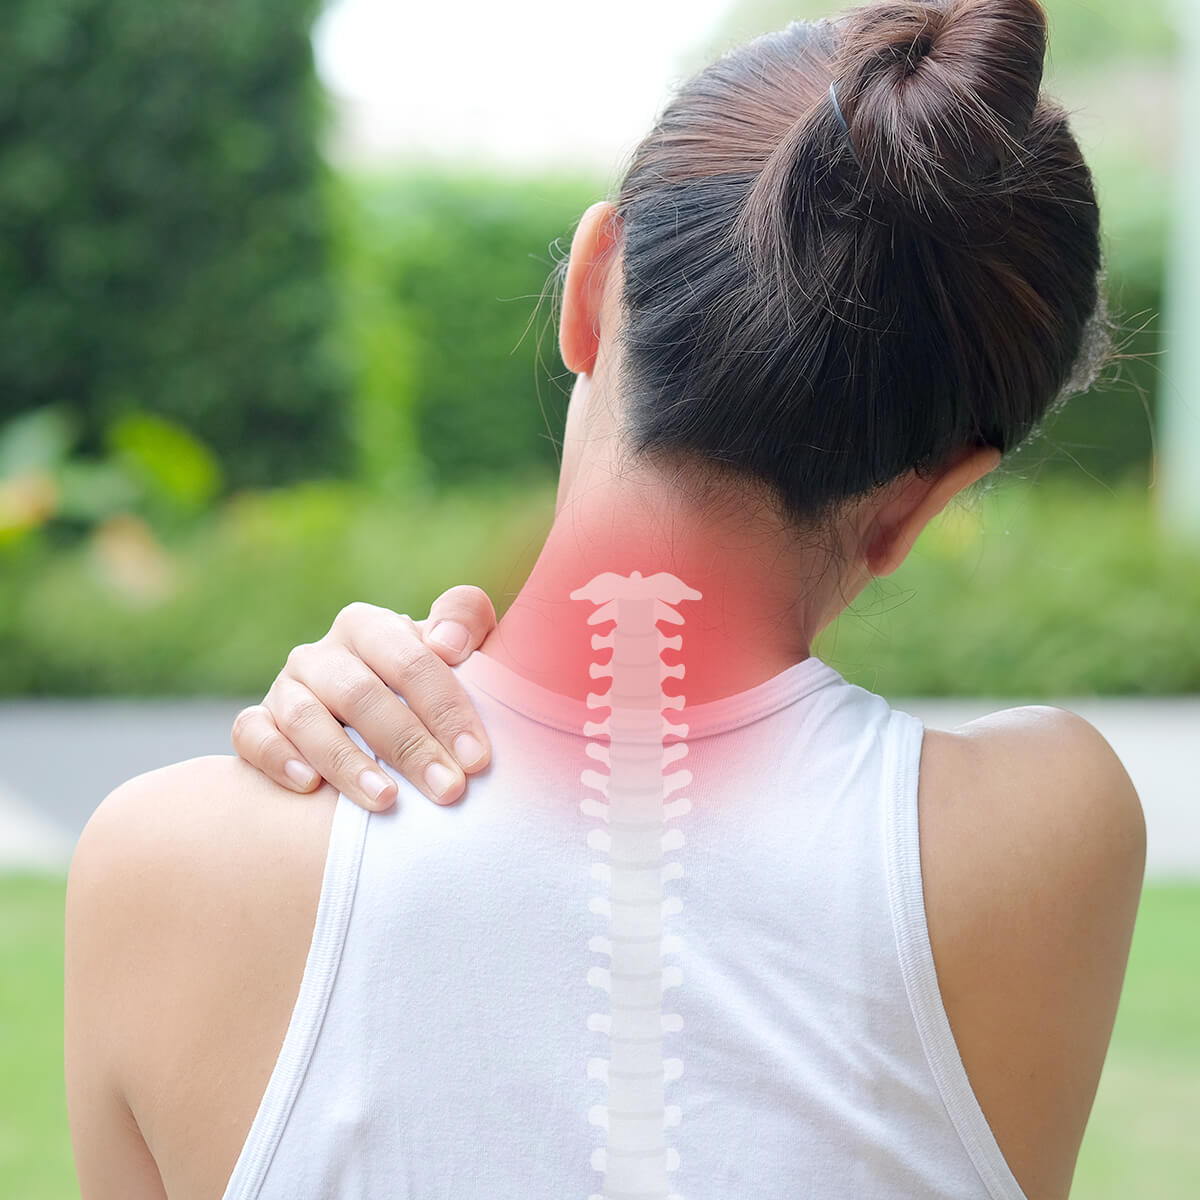 Doctor Articles Pain in Spinal Region 2